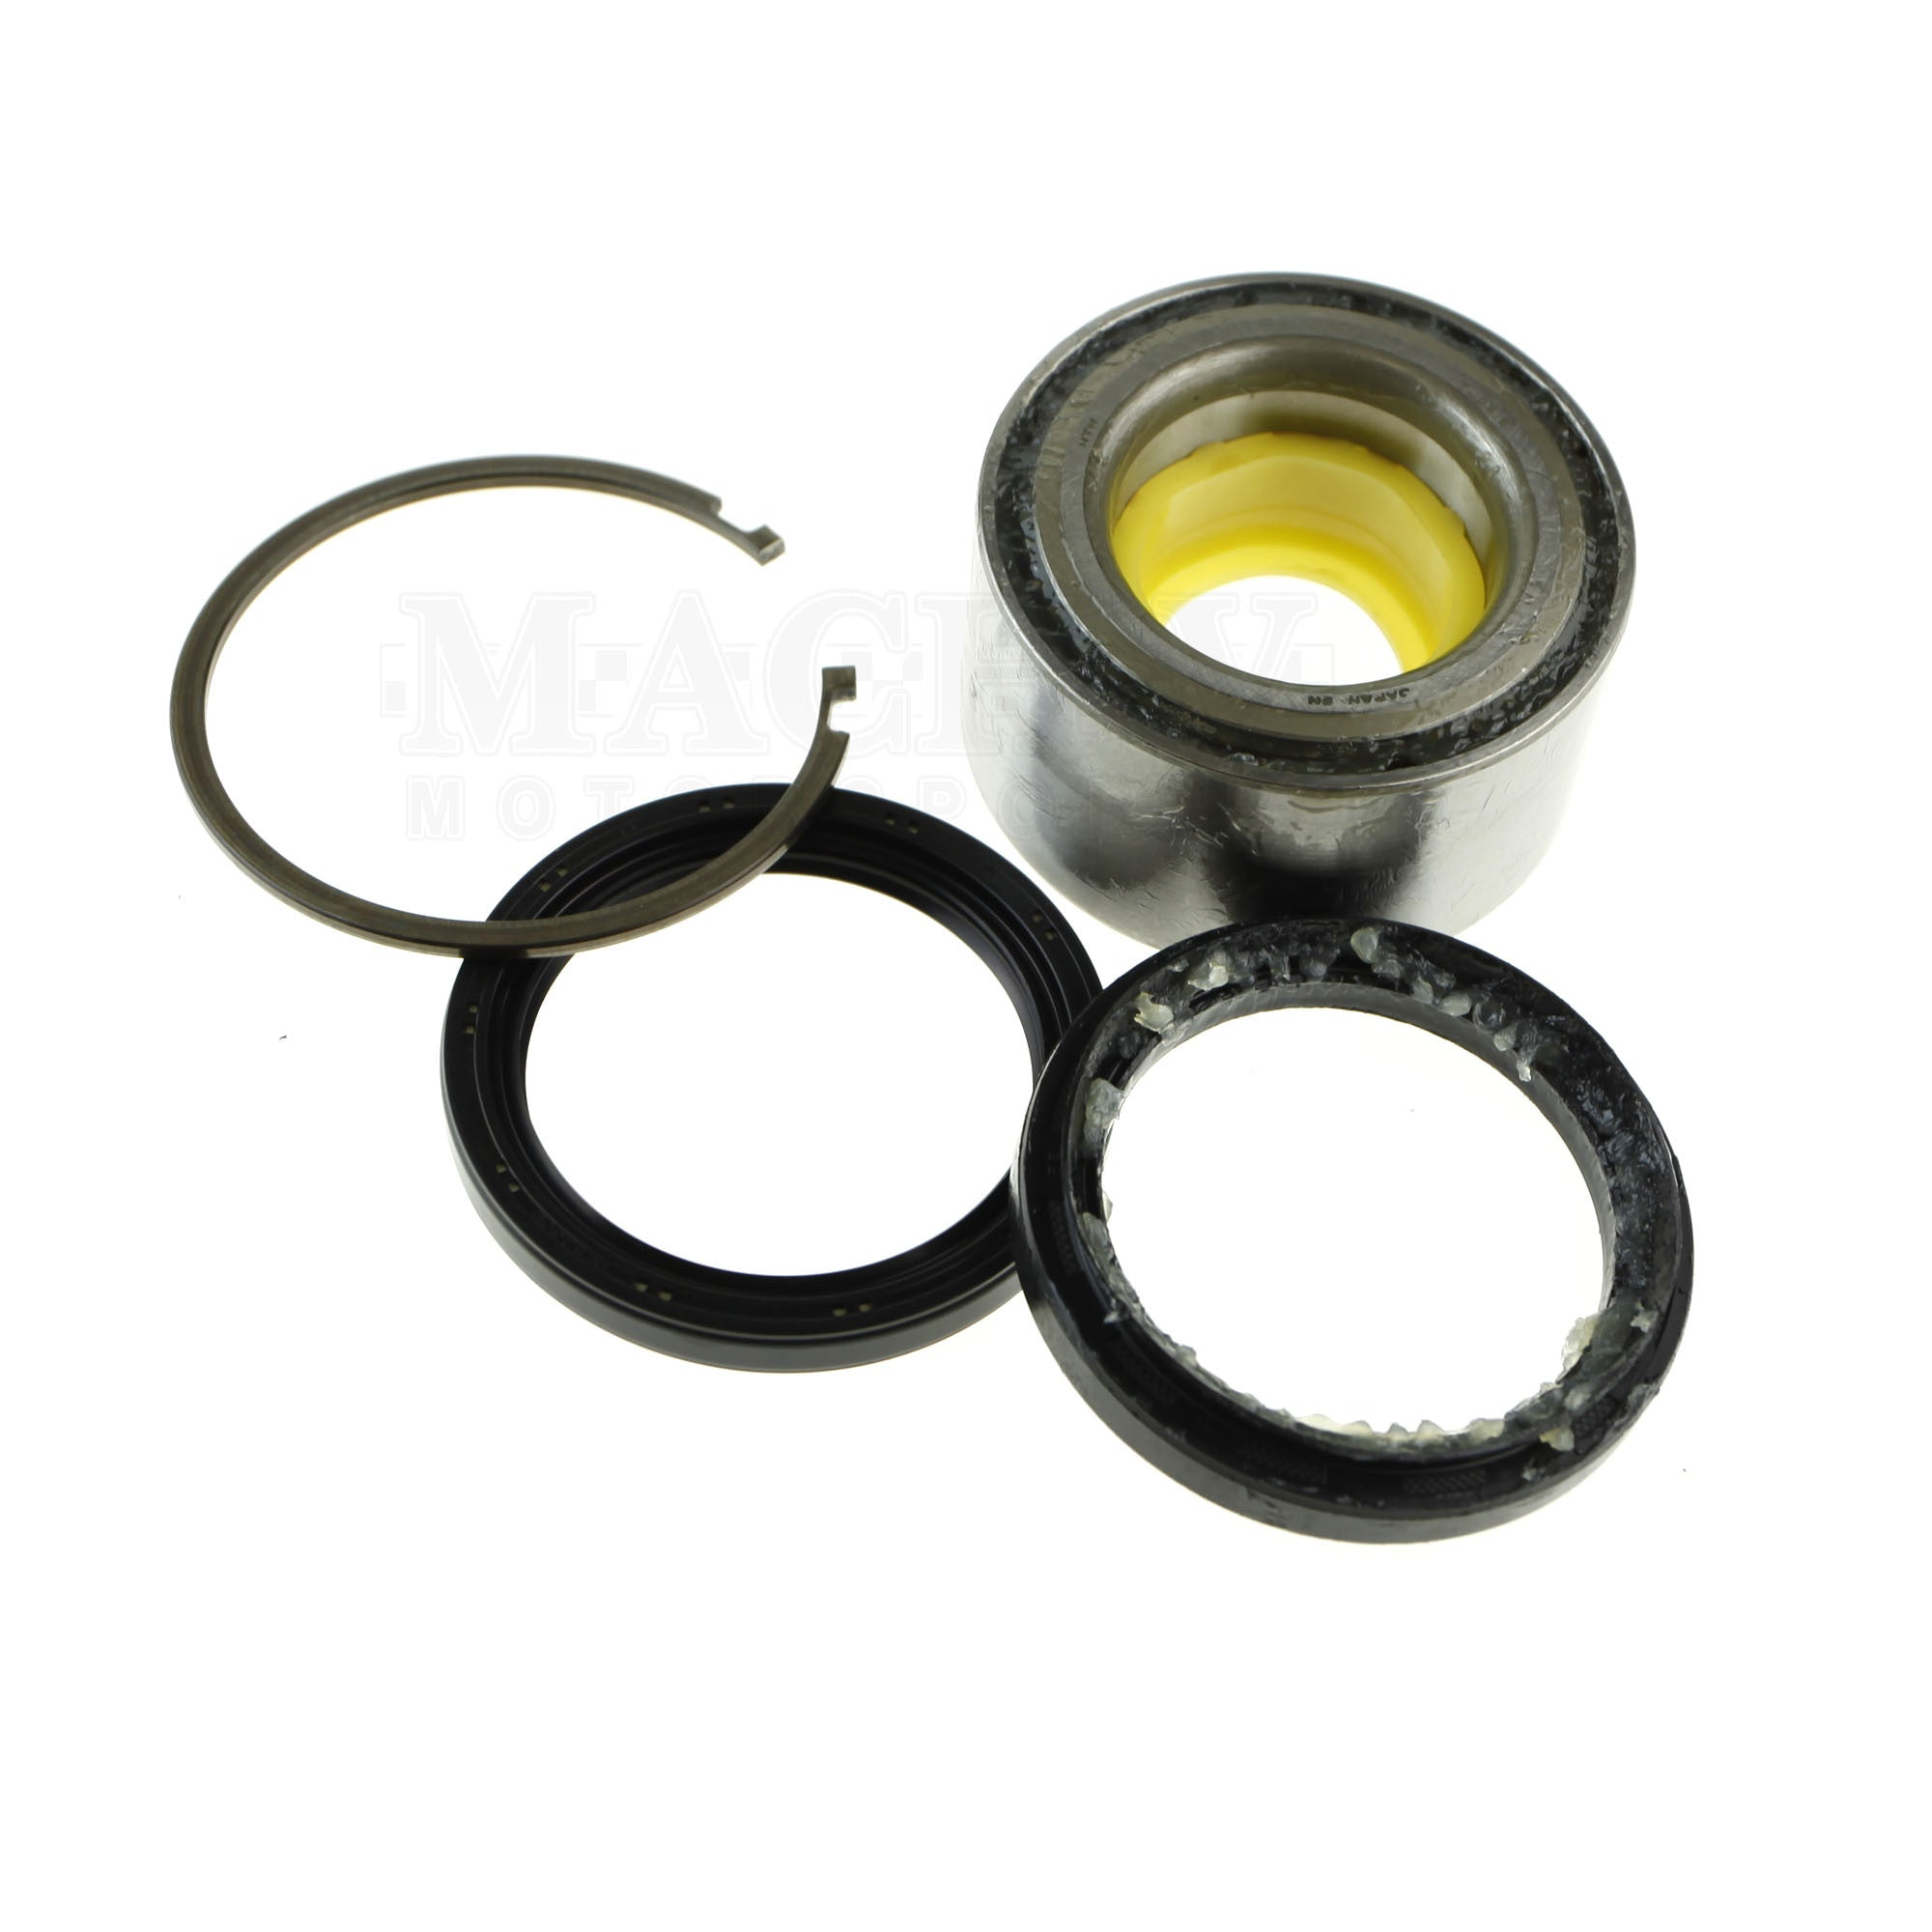 Oem Suspension Axle Parts For Subarus Subaru Impreza Diagram Front Wheel Bearing Kit 2002 2007 Wrx 2004 Sti